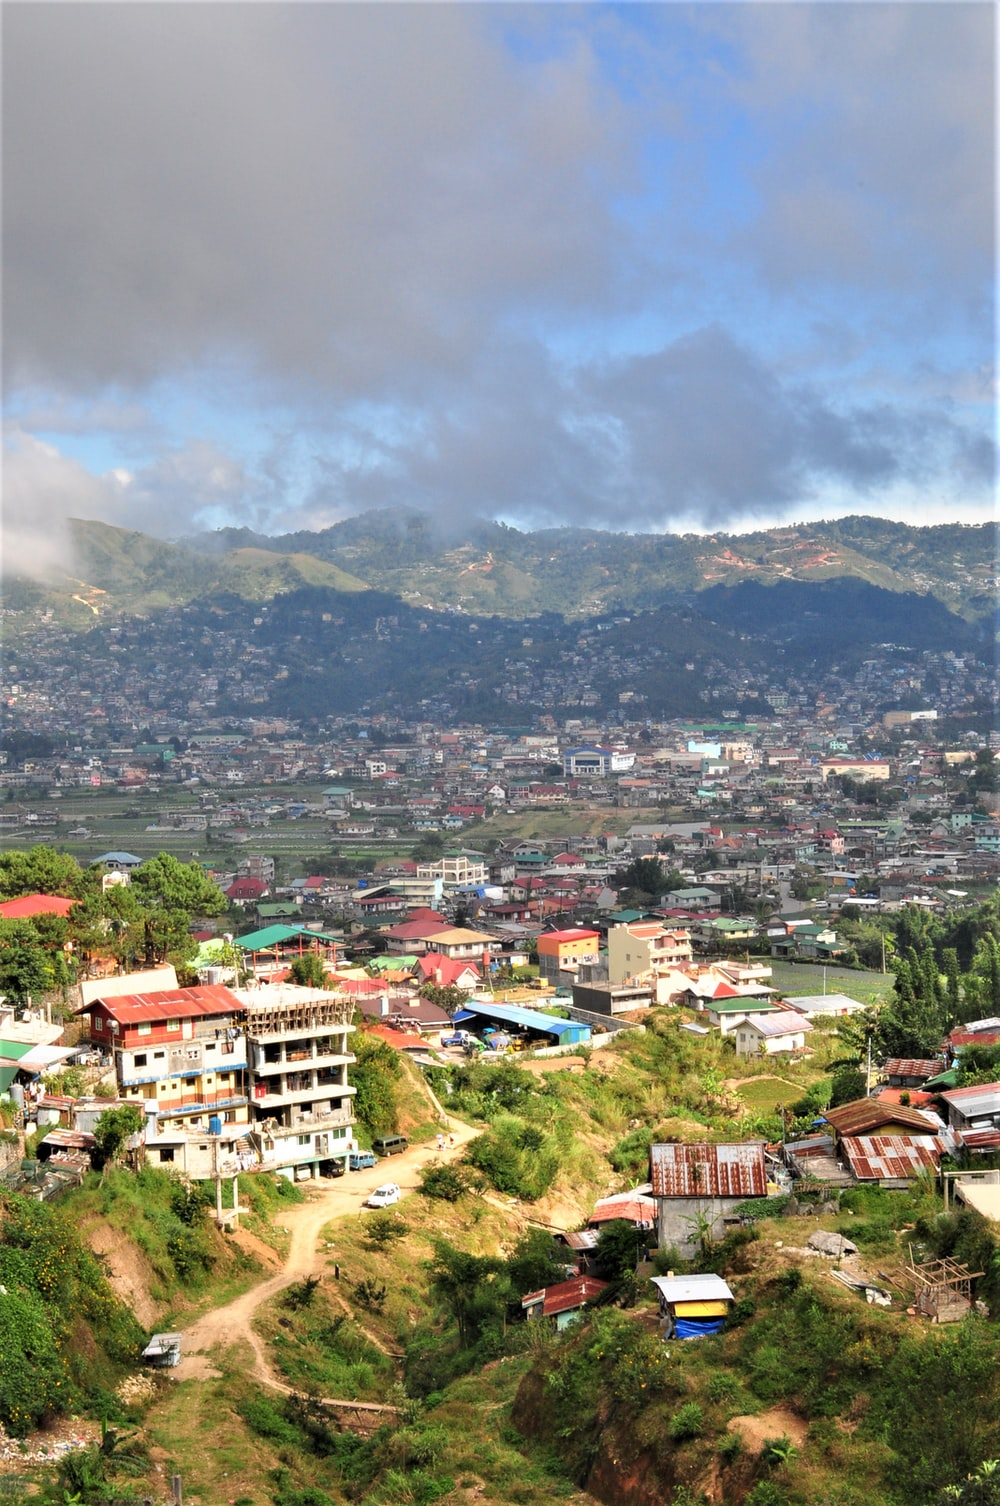 aerial view of city near mountain during daytime